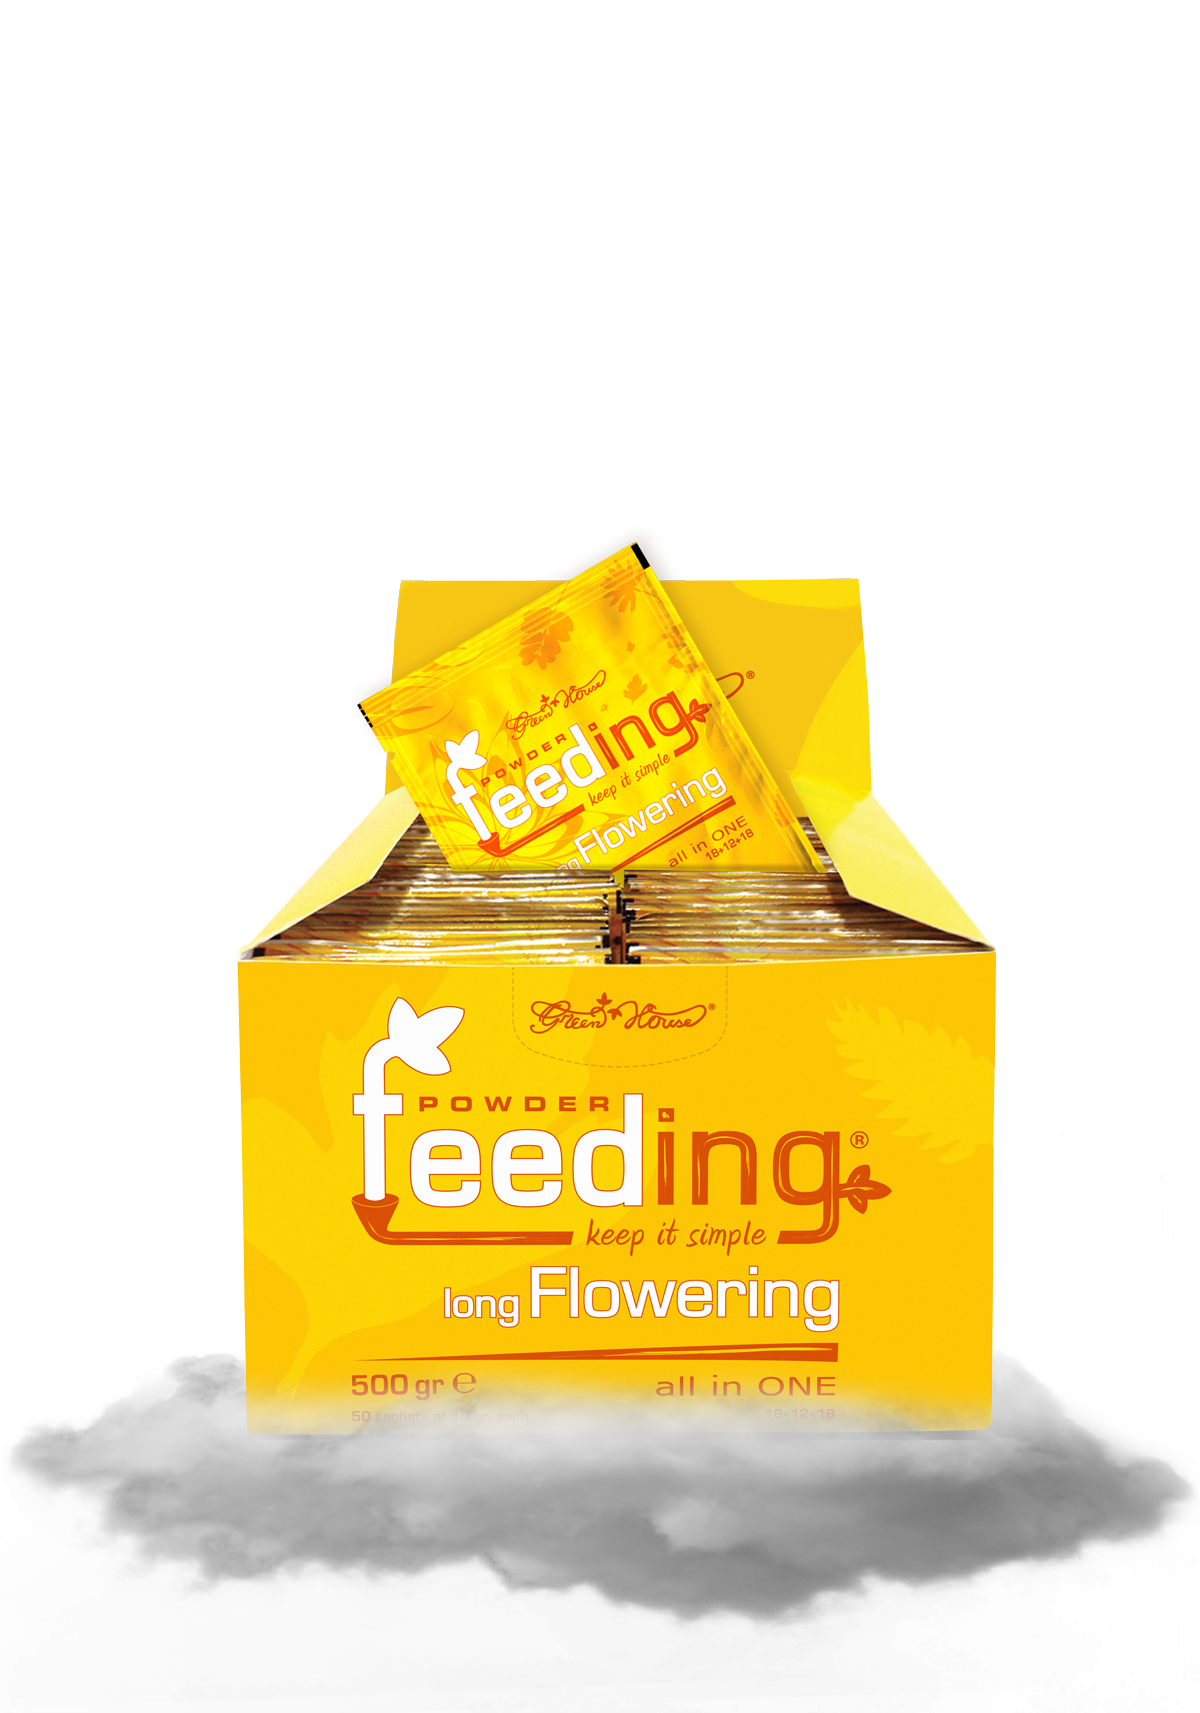 Powder Feeding Long Flowering 500g BOX